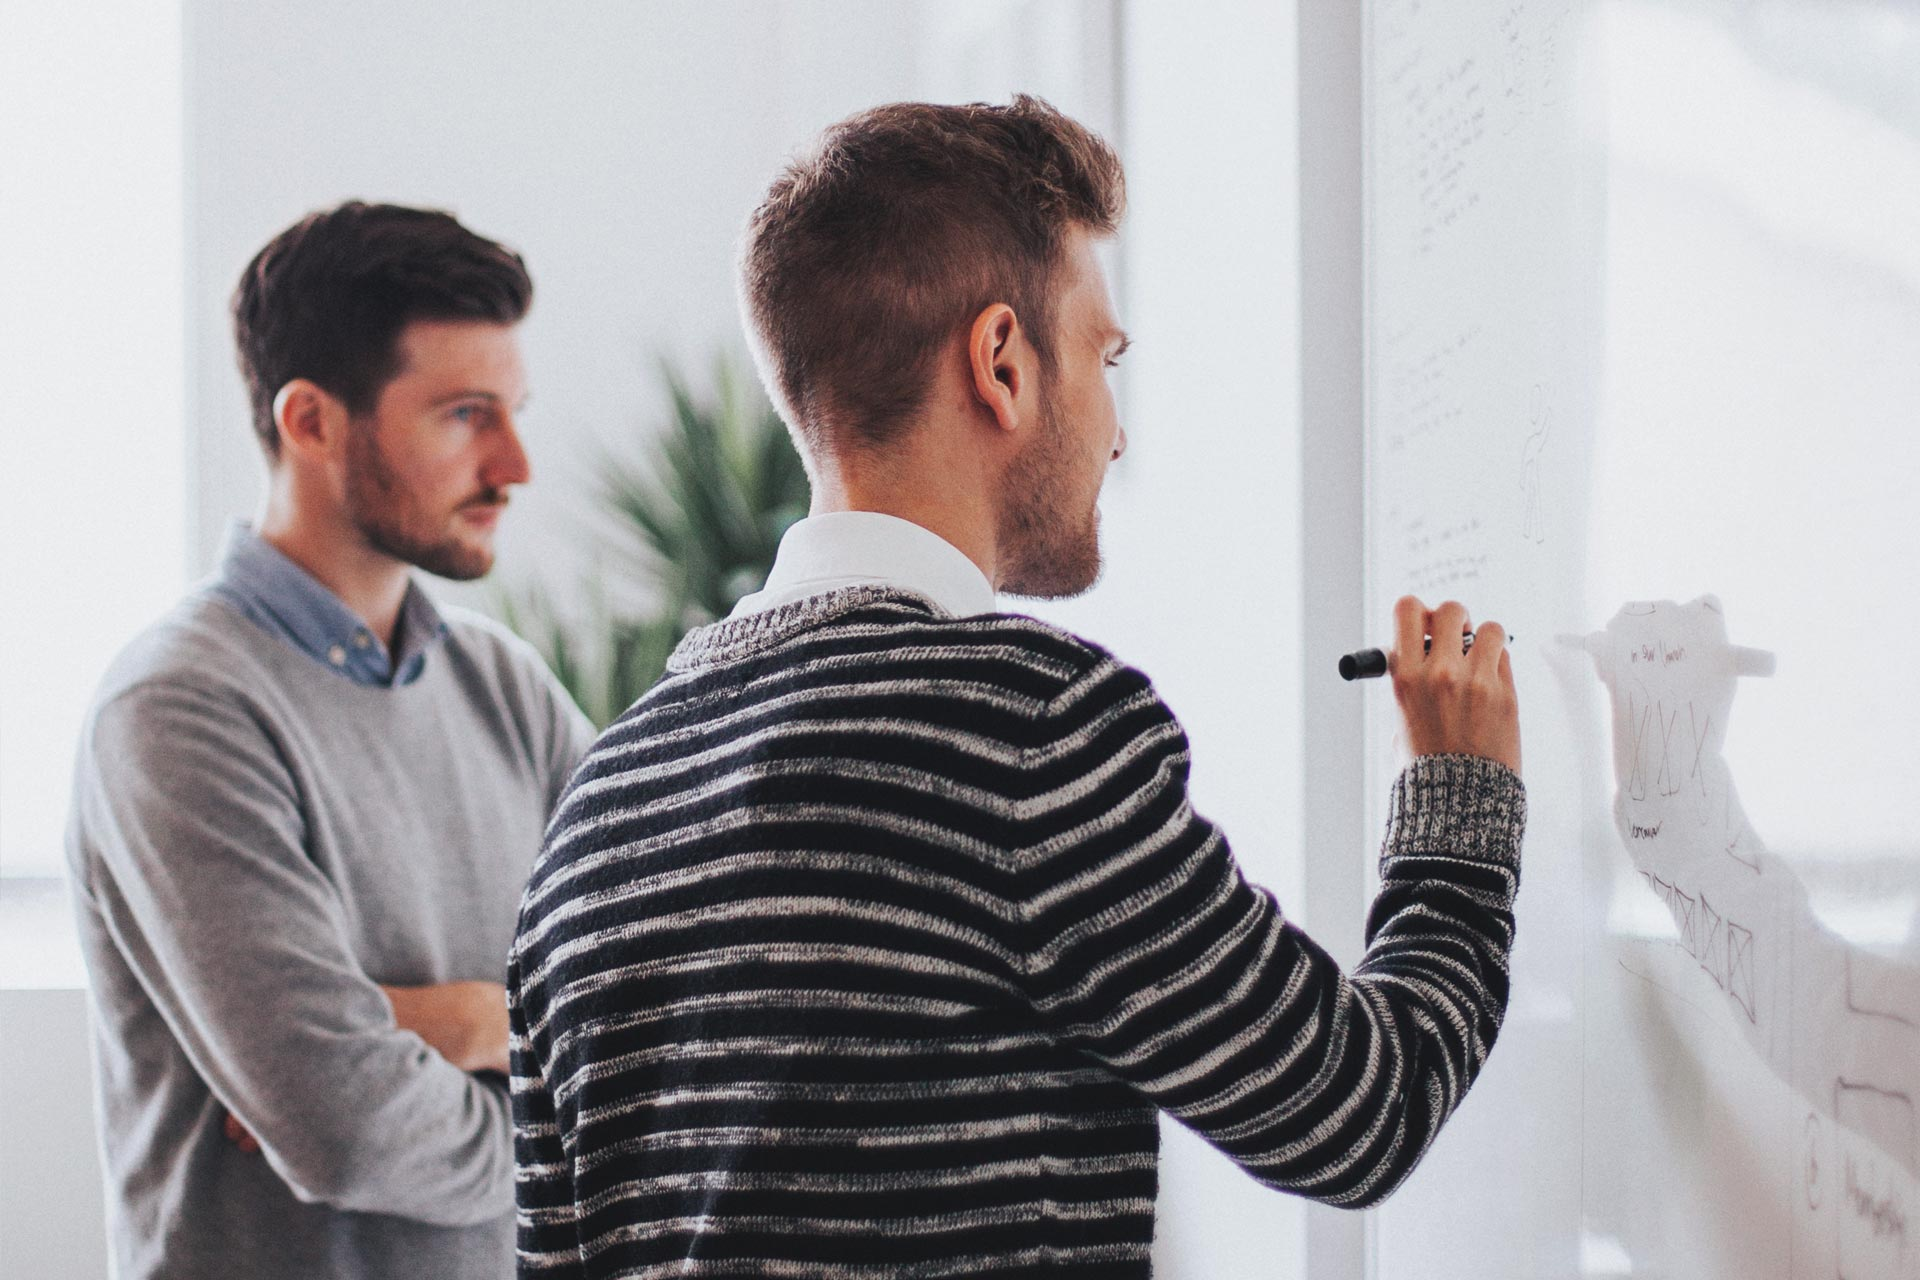 Two designers using a white board